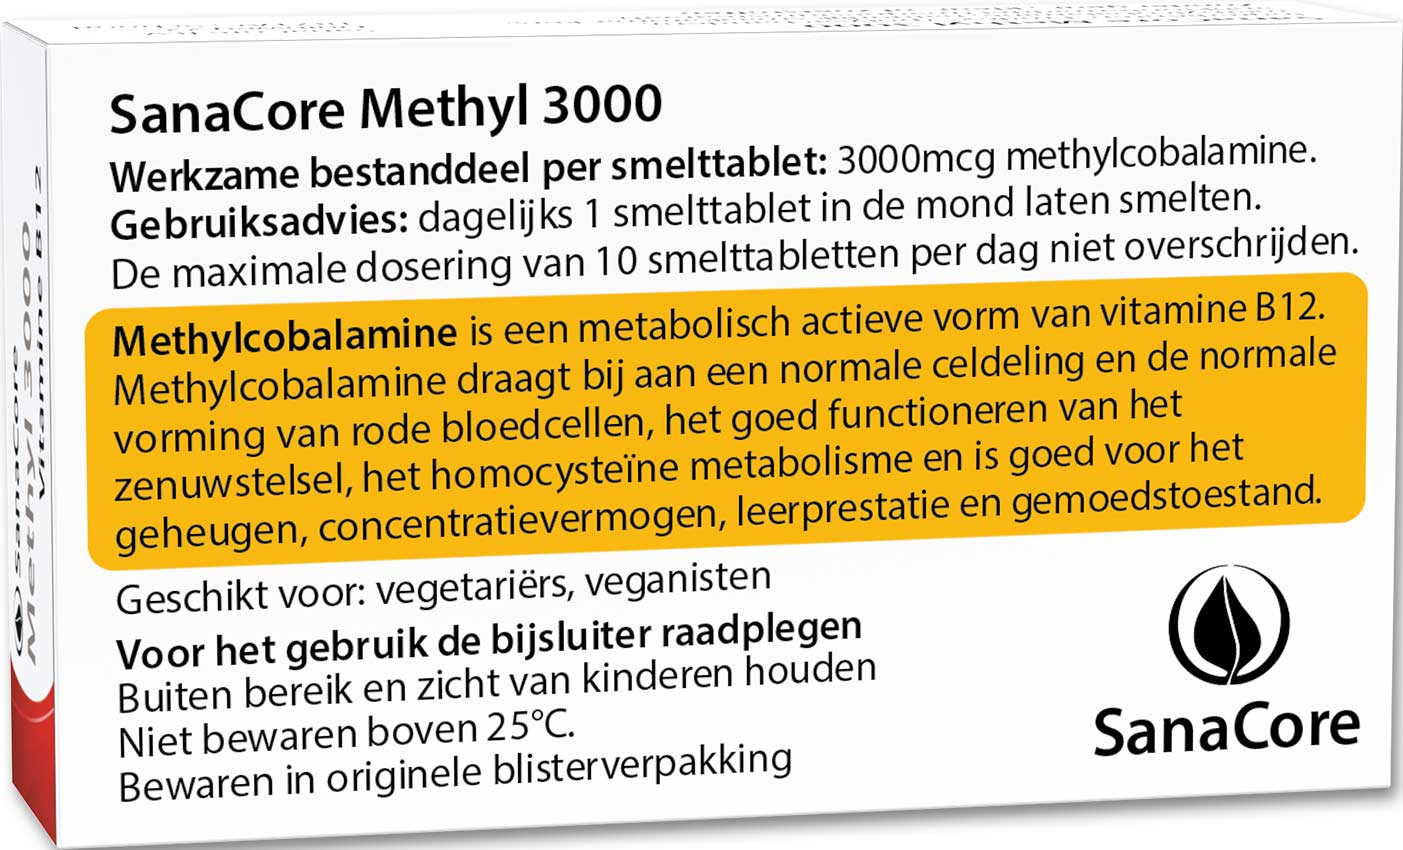 SanaCore Methyl 3000 ZONDER FOLIUMZUUR